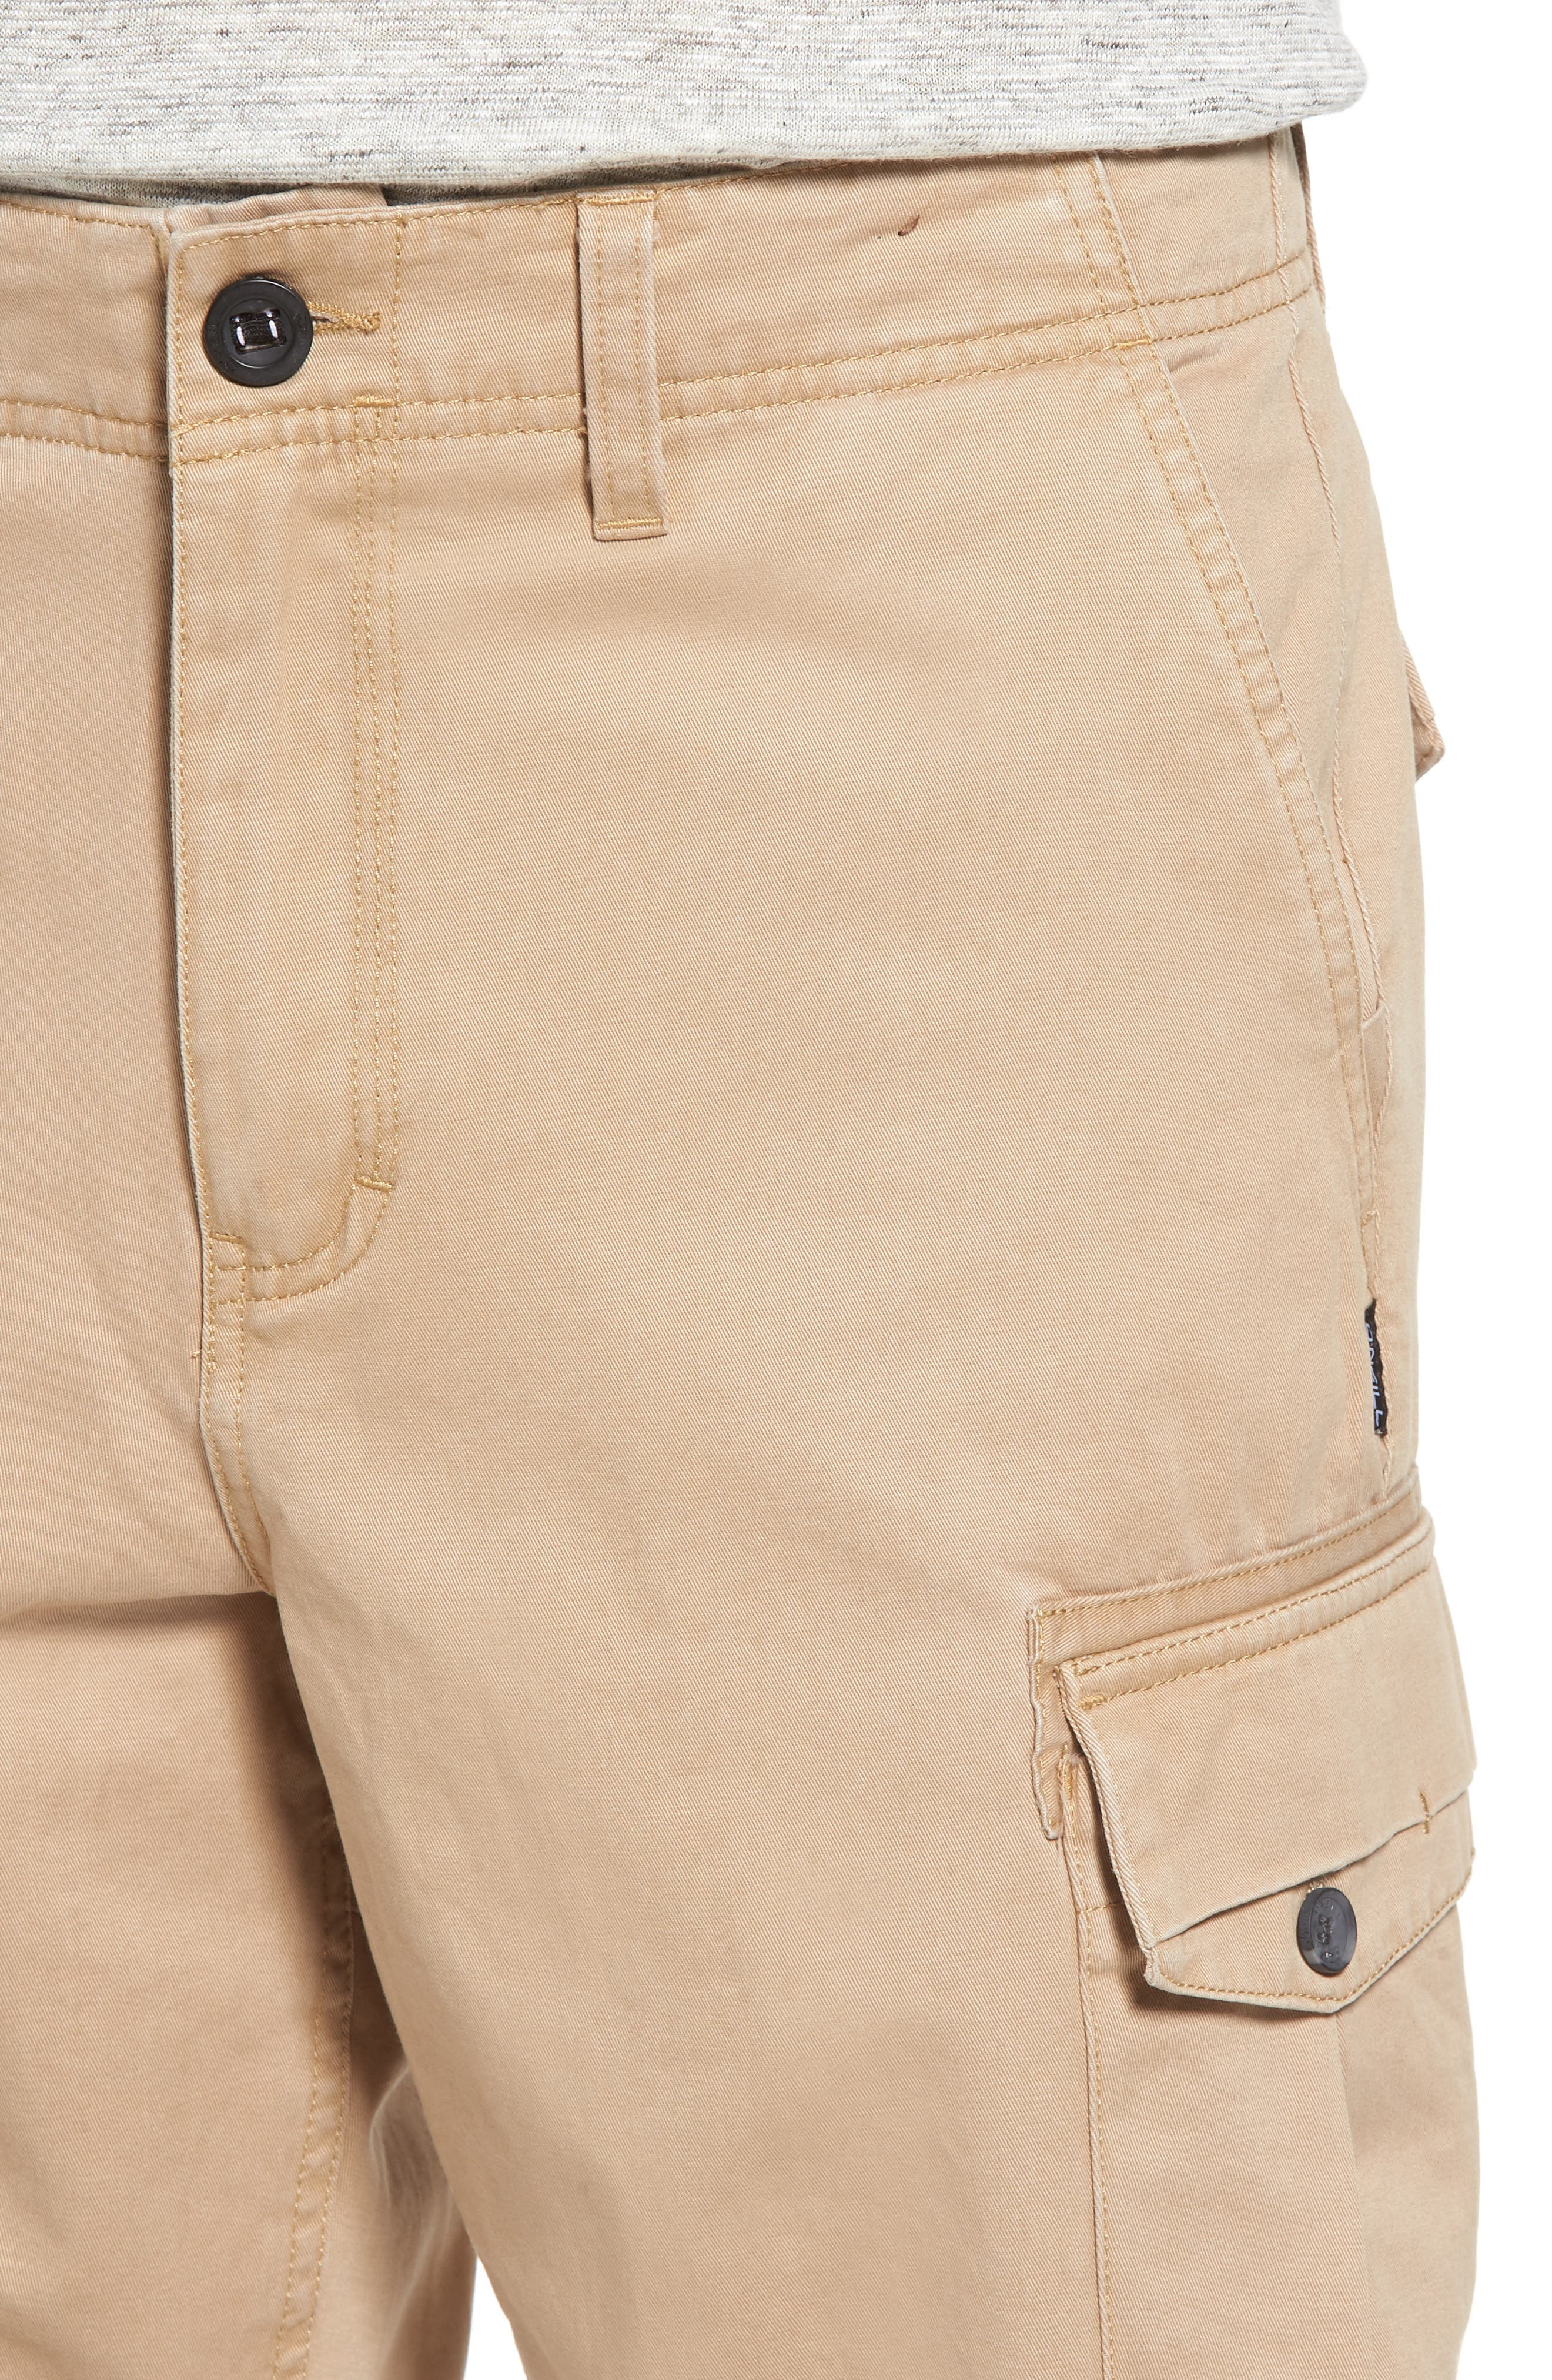 Campbell Cargo Shorts,                             Alternate thumbnail 4, color,                             251